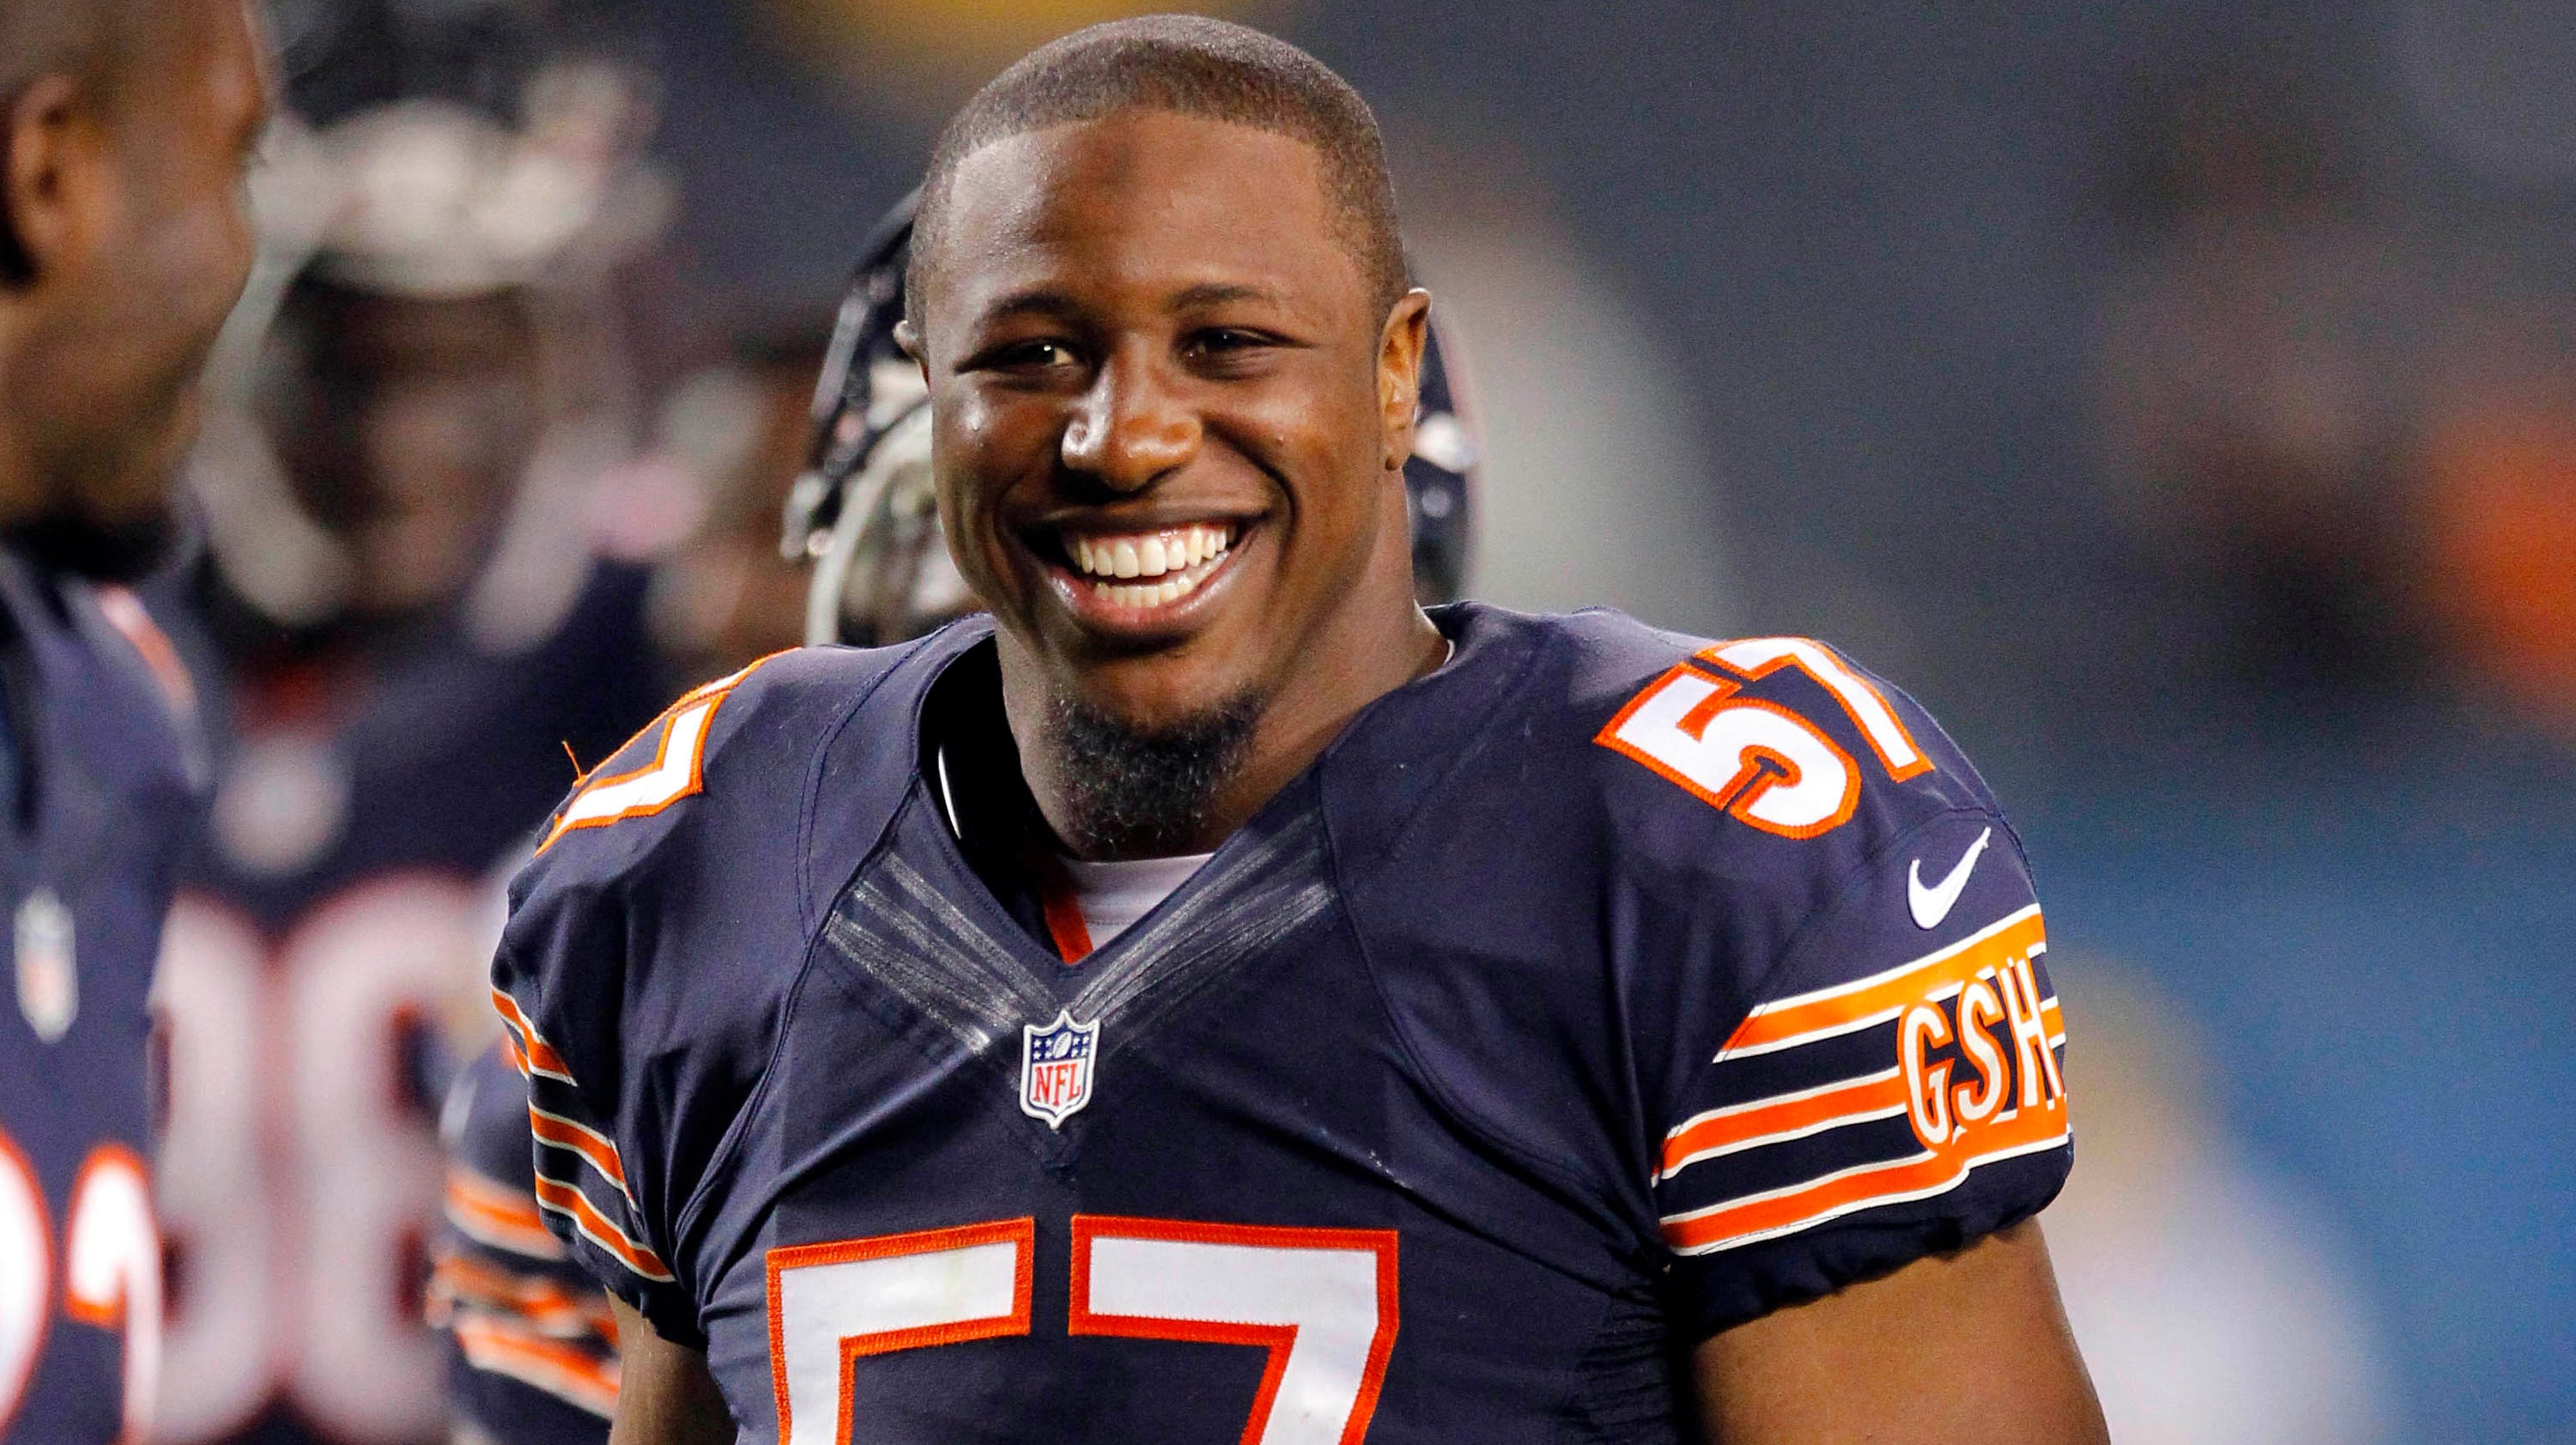 Bears Rookie Lb Jon Bostic Fined 21 000 For Illegal Hit